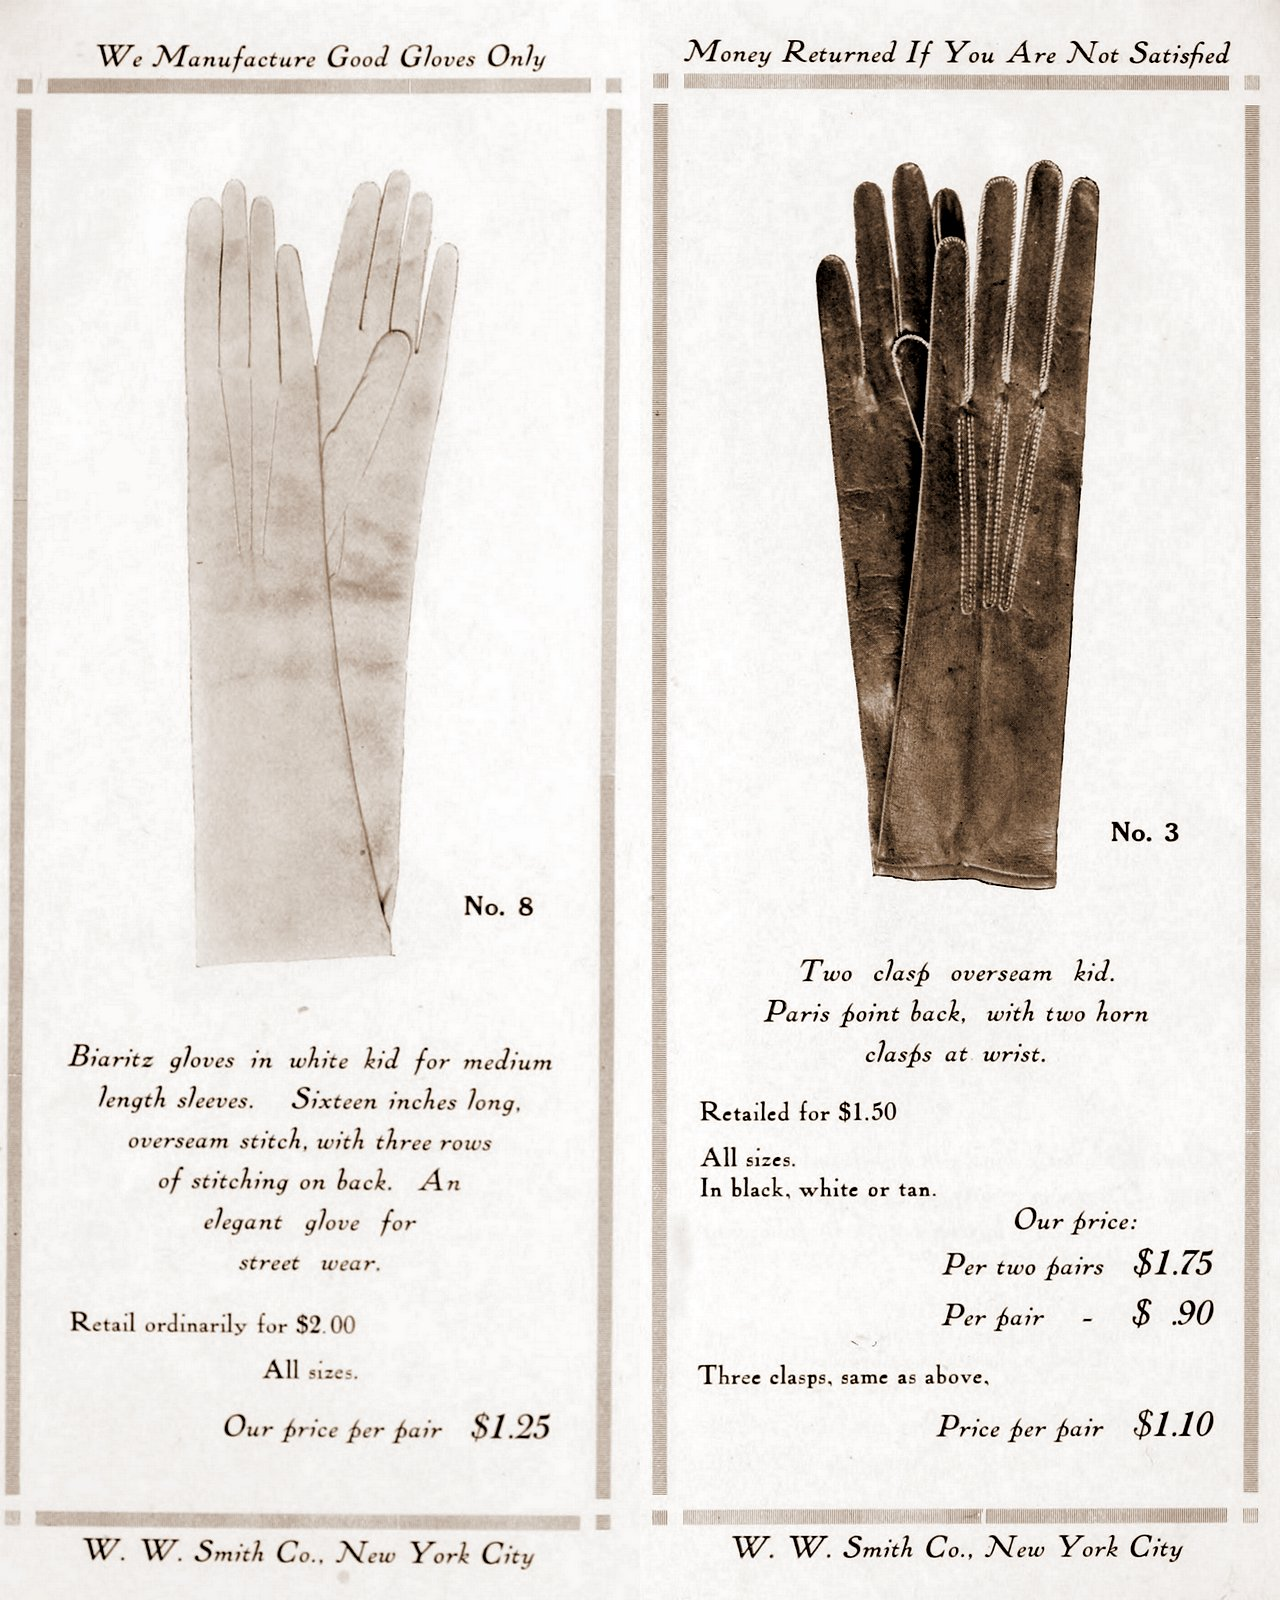 Antique gloves - styles for women from 1912 (4)